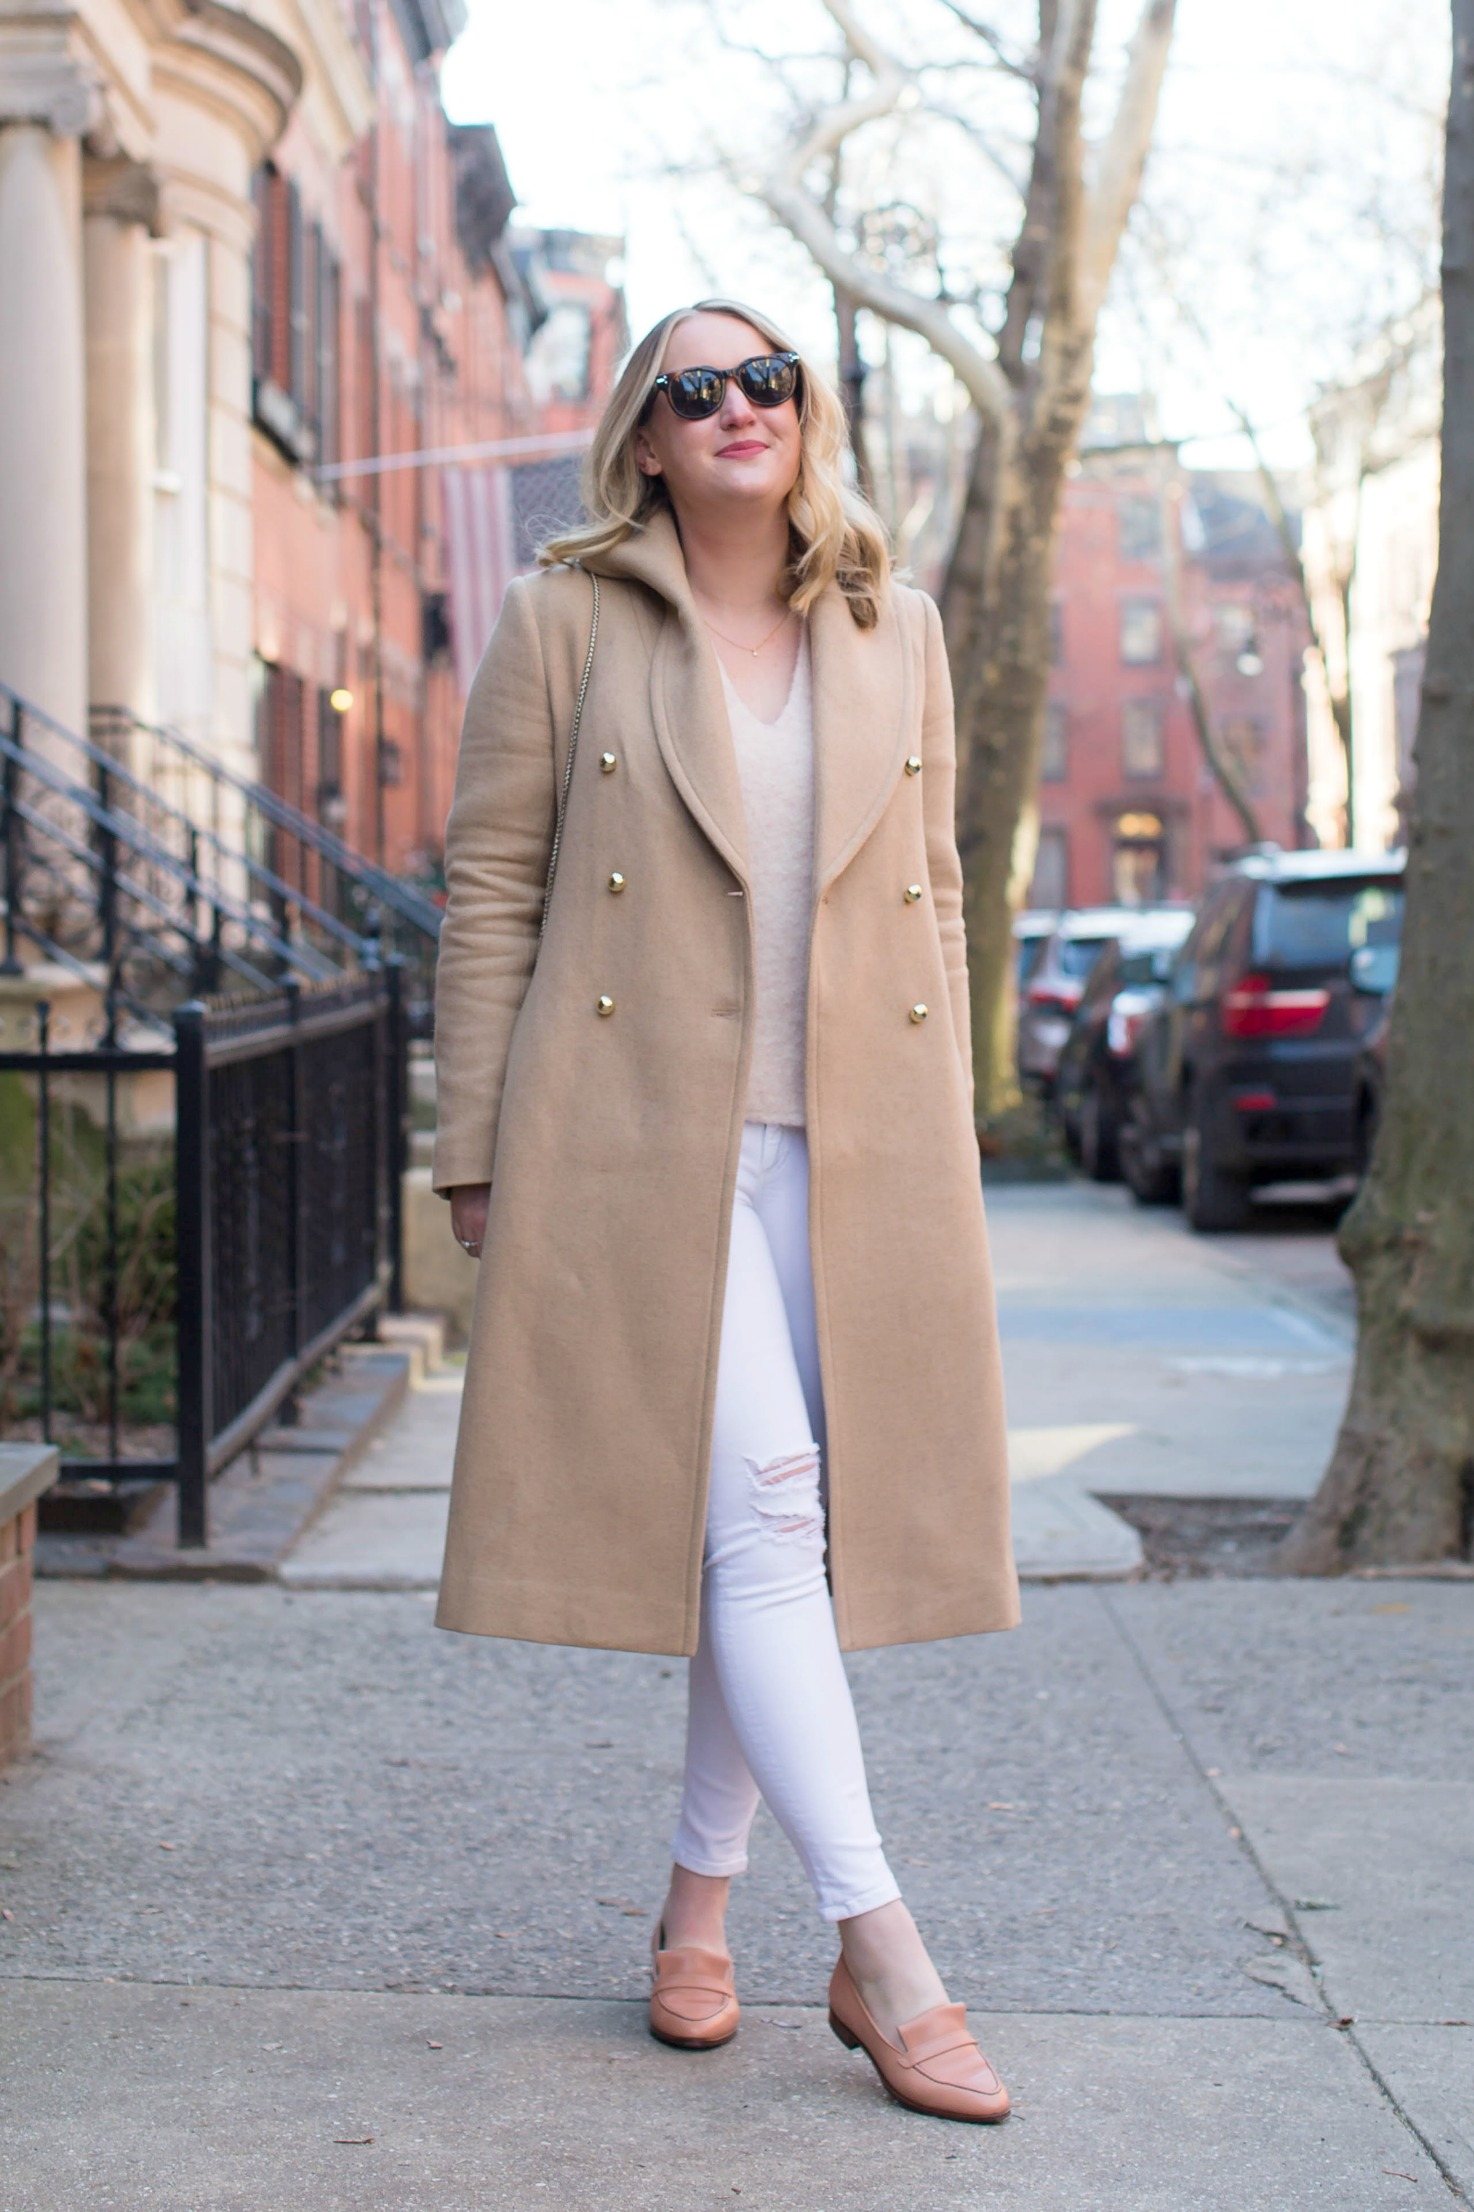 Camel Coat styled with white jeans I Meghan Donovan of wit & whimsy